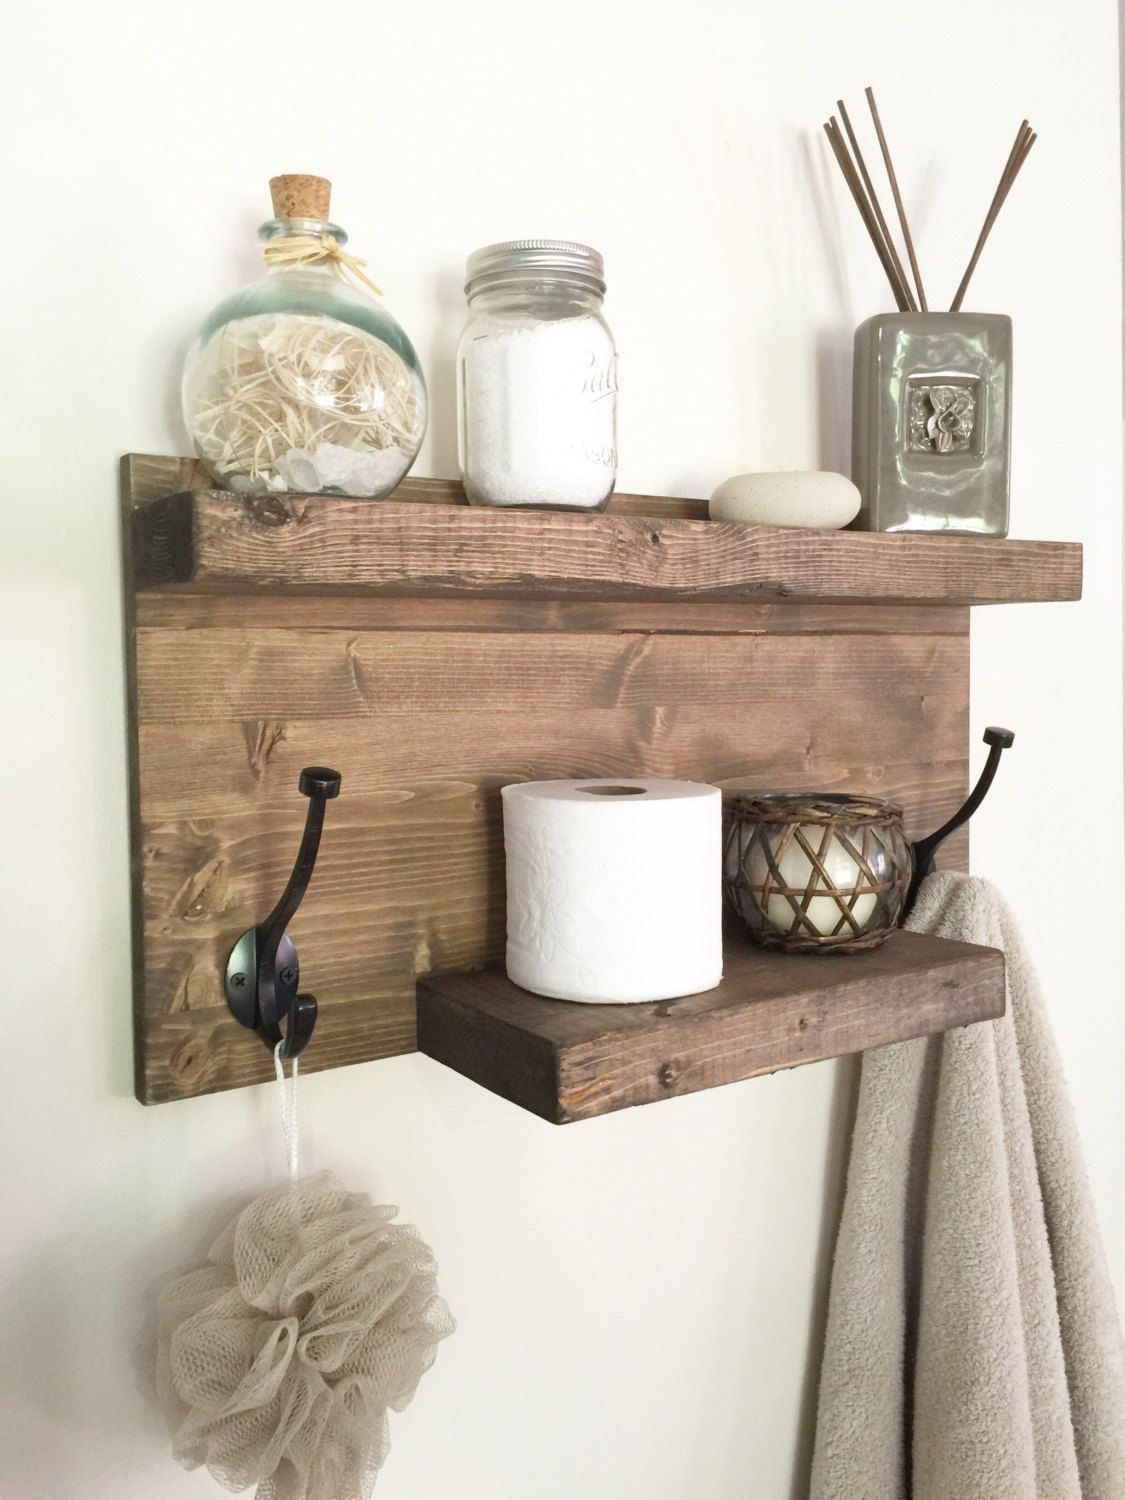 Rustic Bathroom Towel Rack Shelf Farmhouse Decor With Hooks